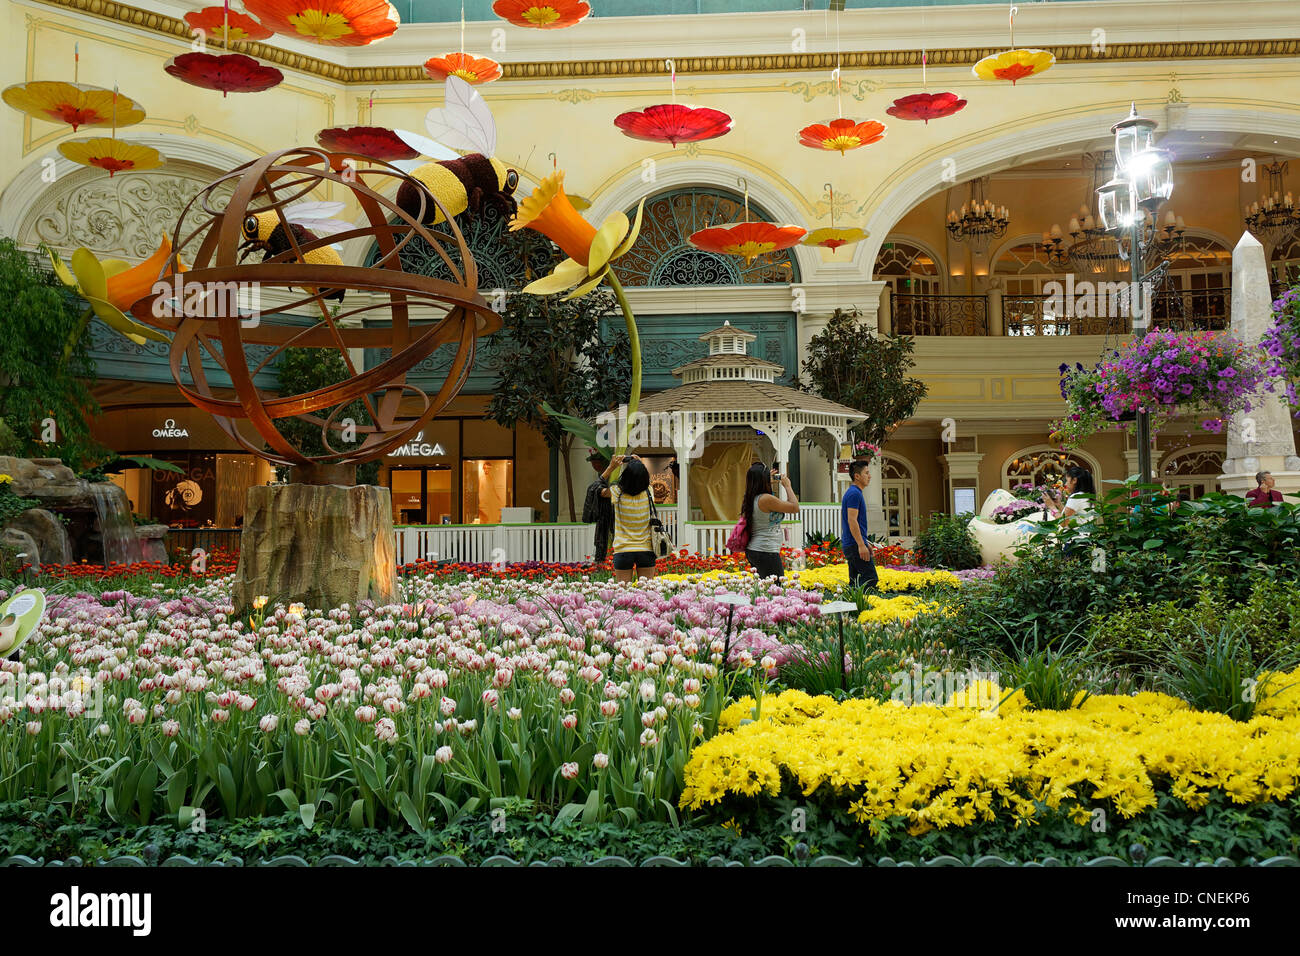 Bellagio Hotel and Casino, Gardens, Conservatory, Las Vegas, Nevada, USA Stock Photo